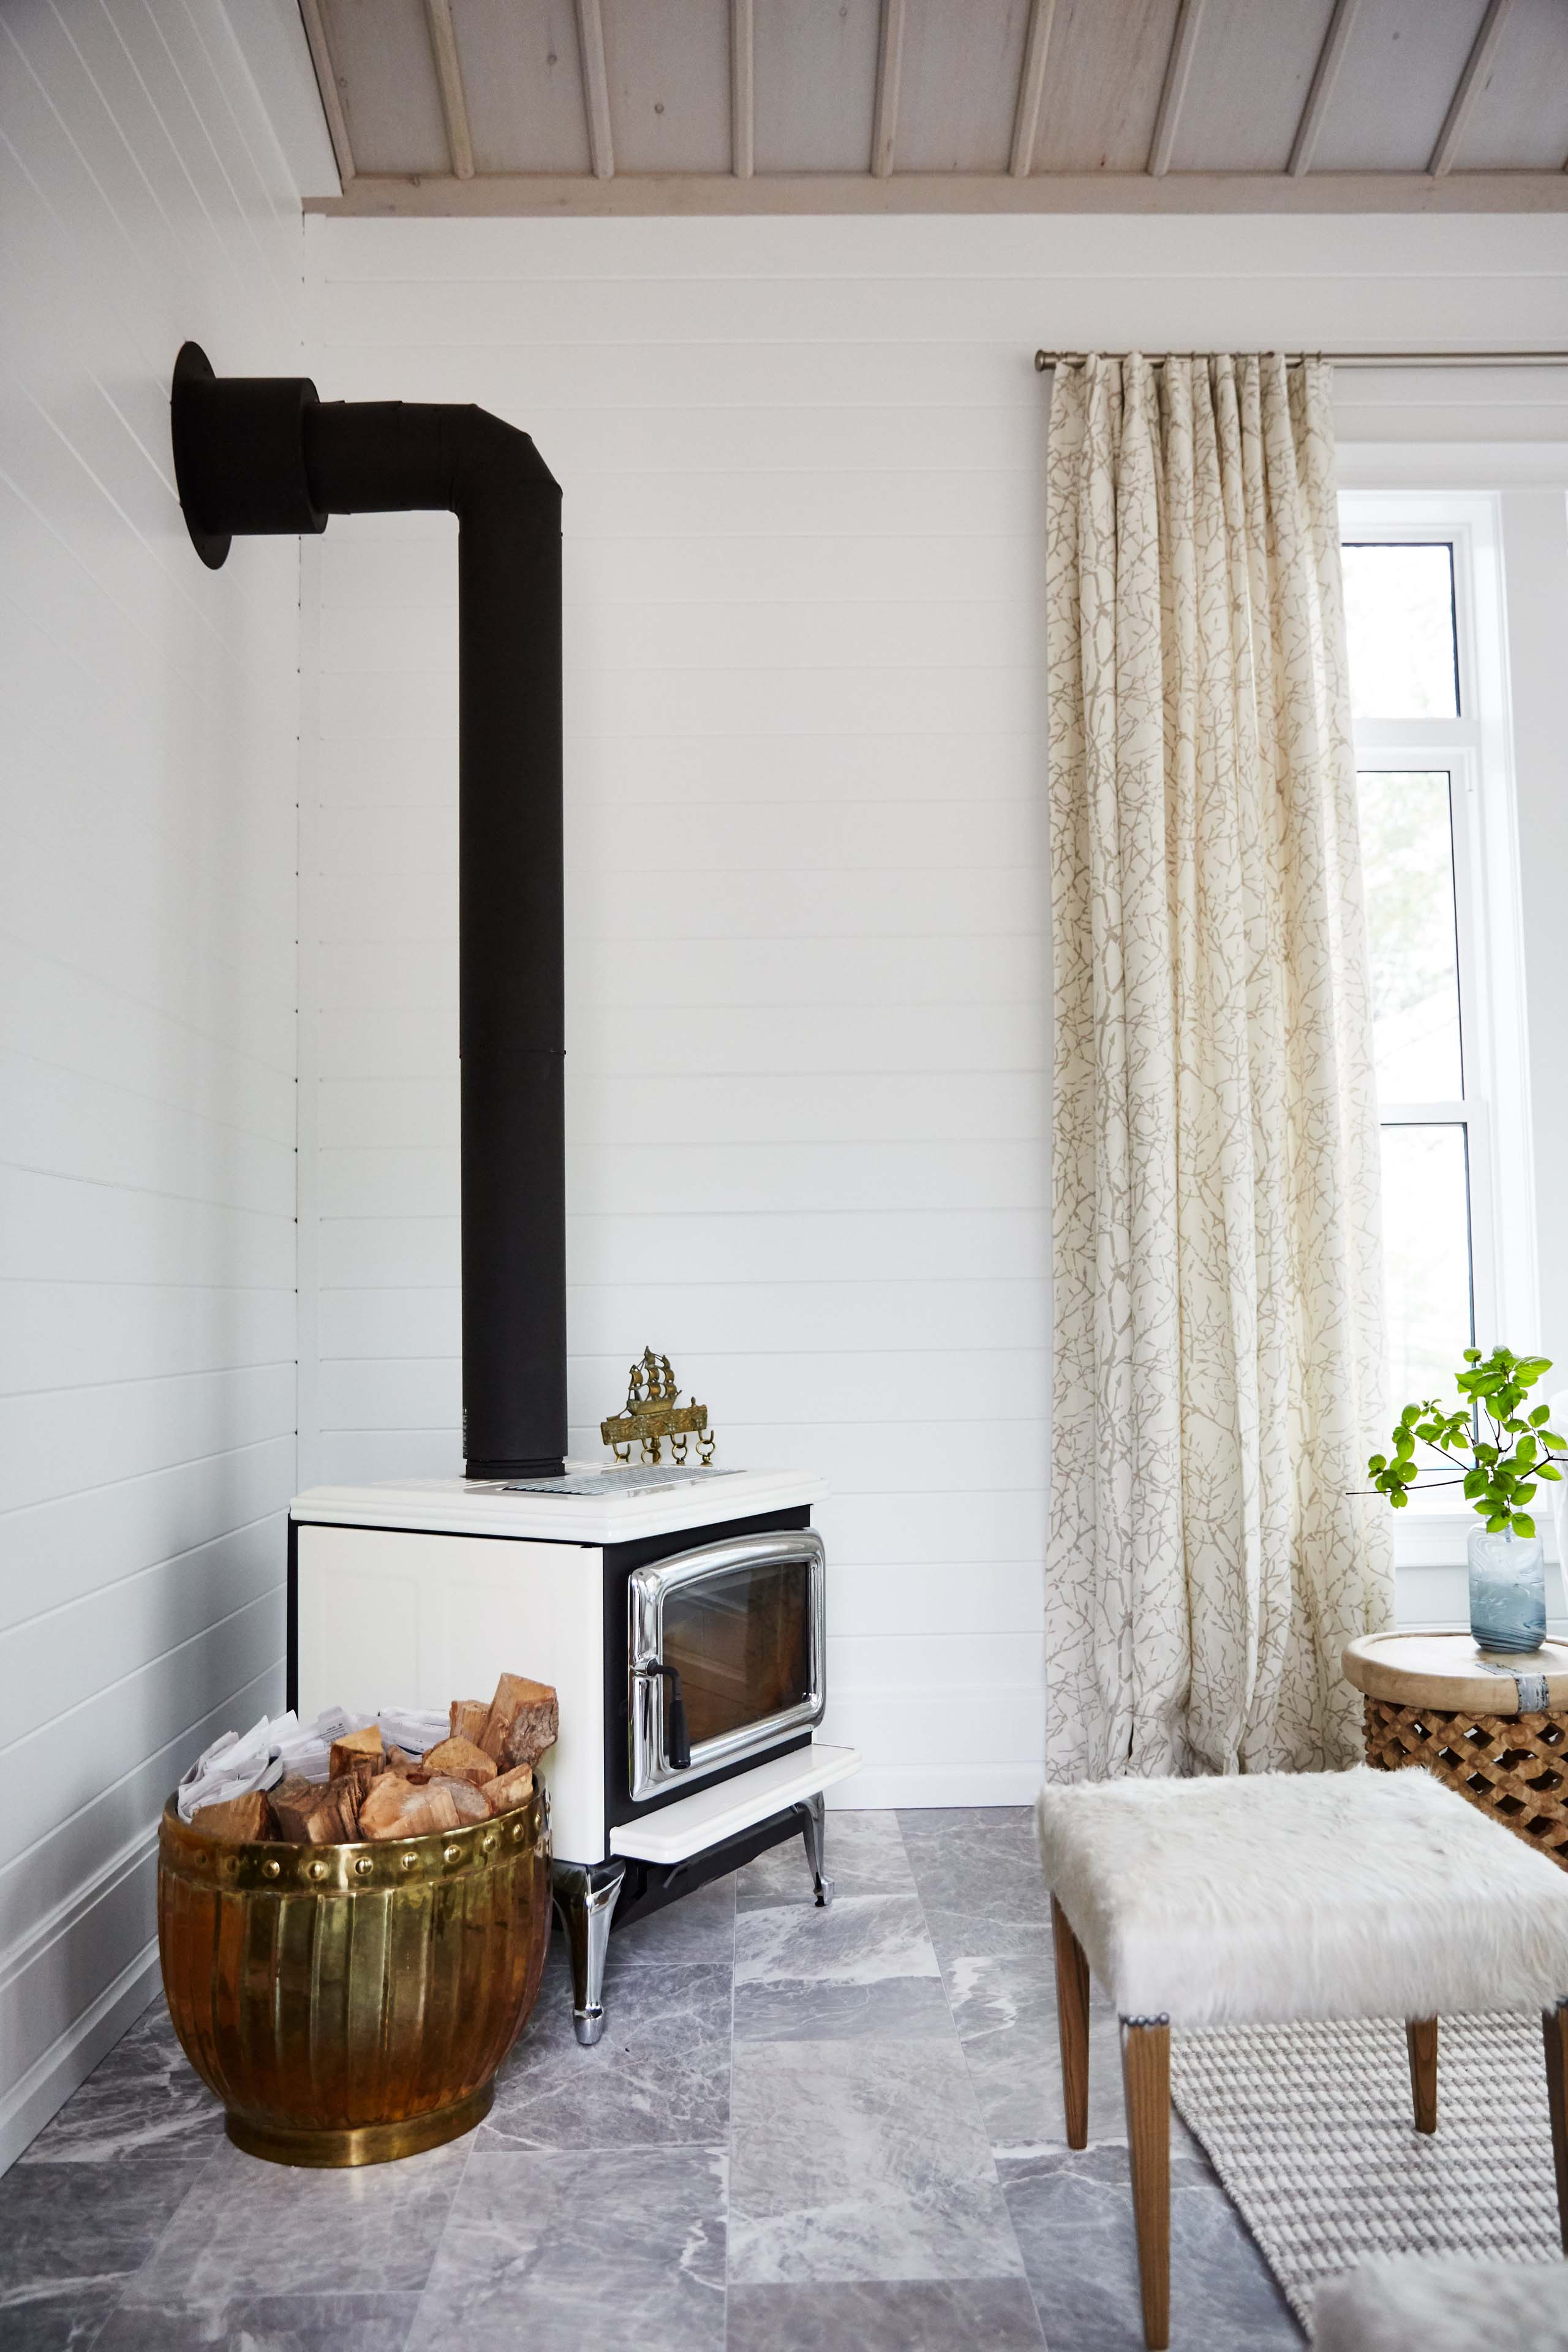 A vintage fireplace stove adds instant charm and character. #SarahRicardson #woodburningstove